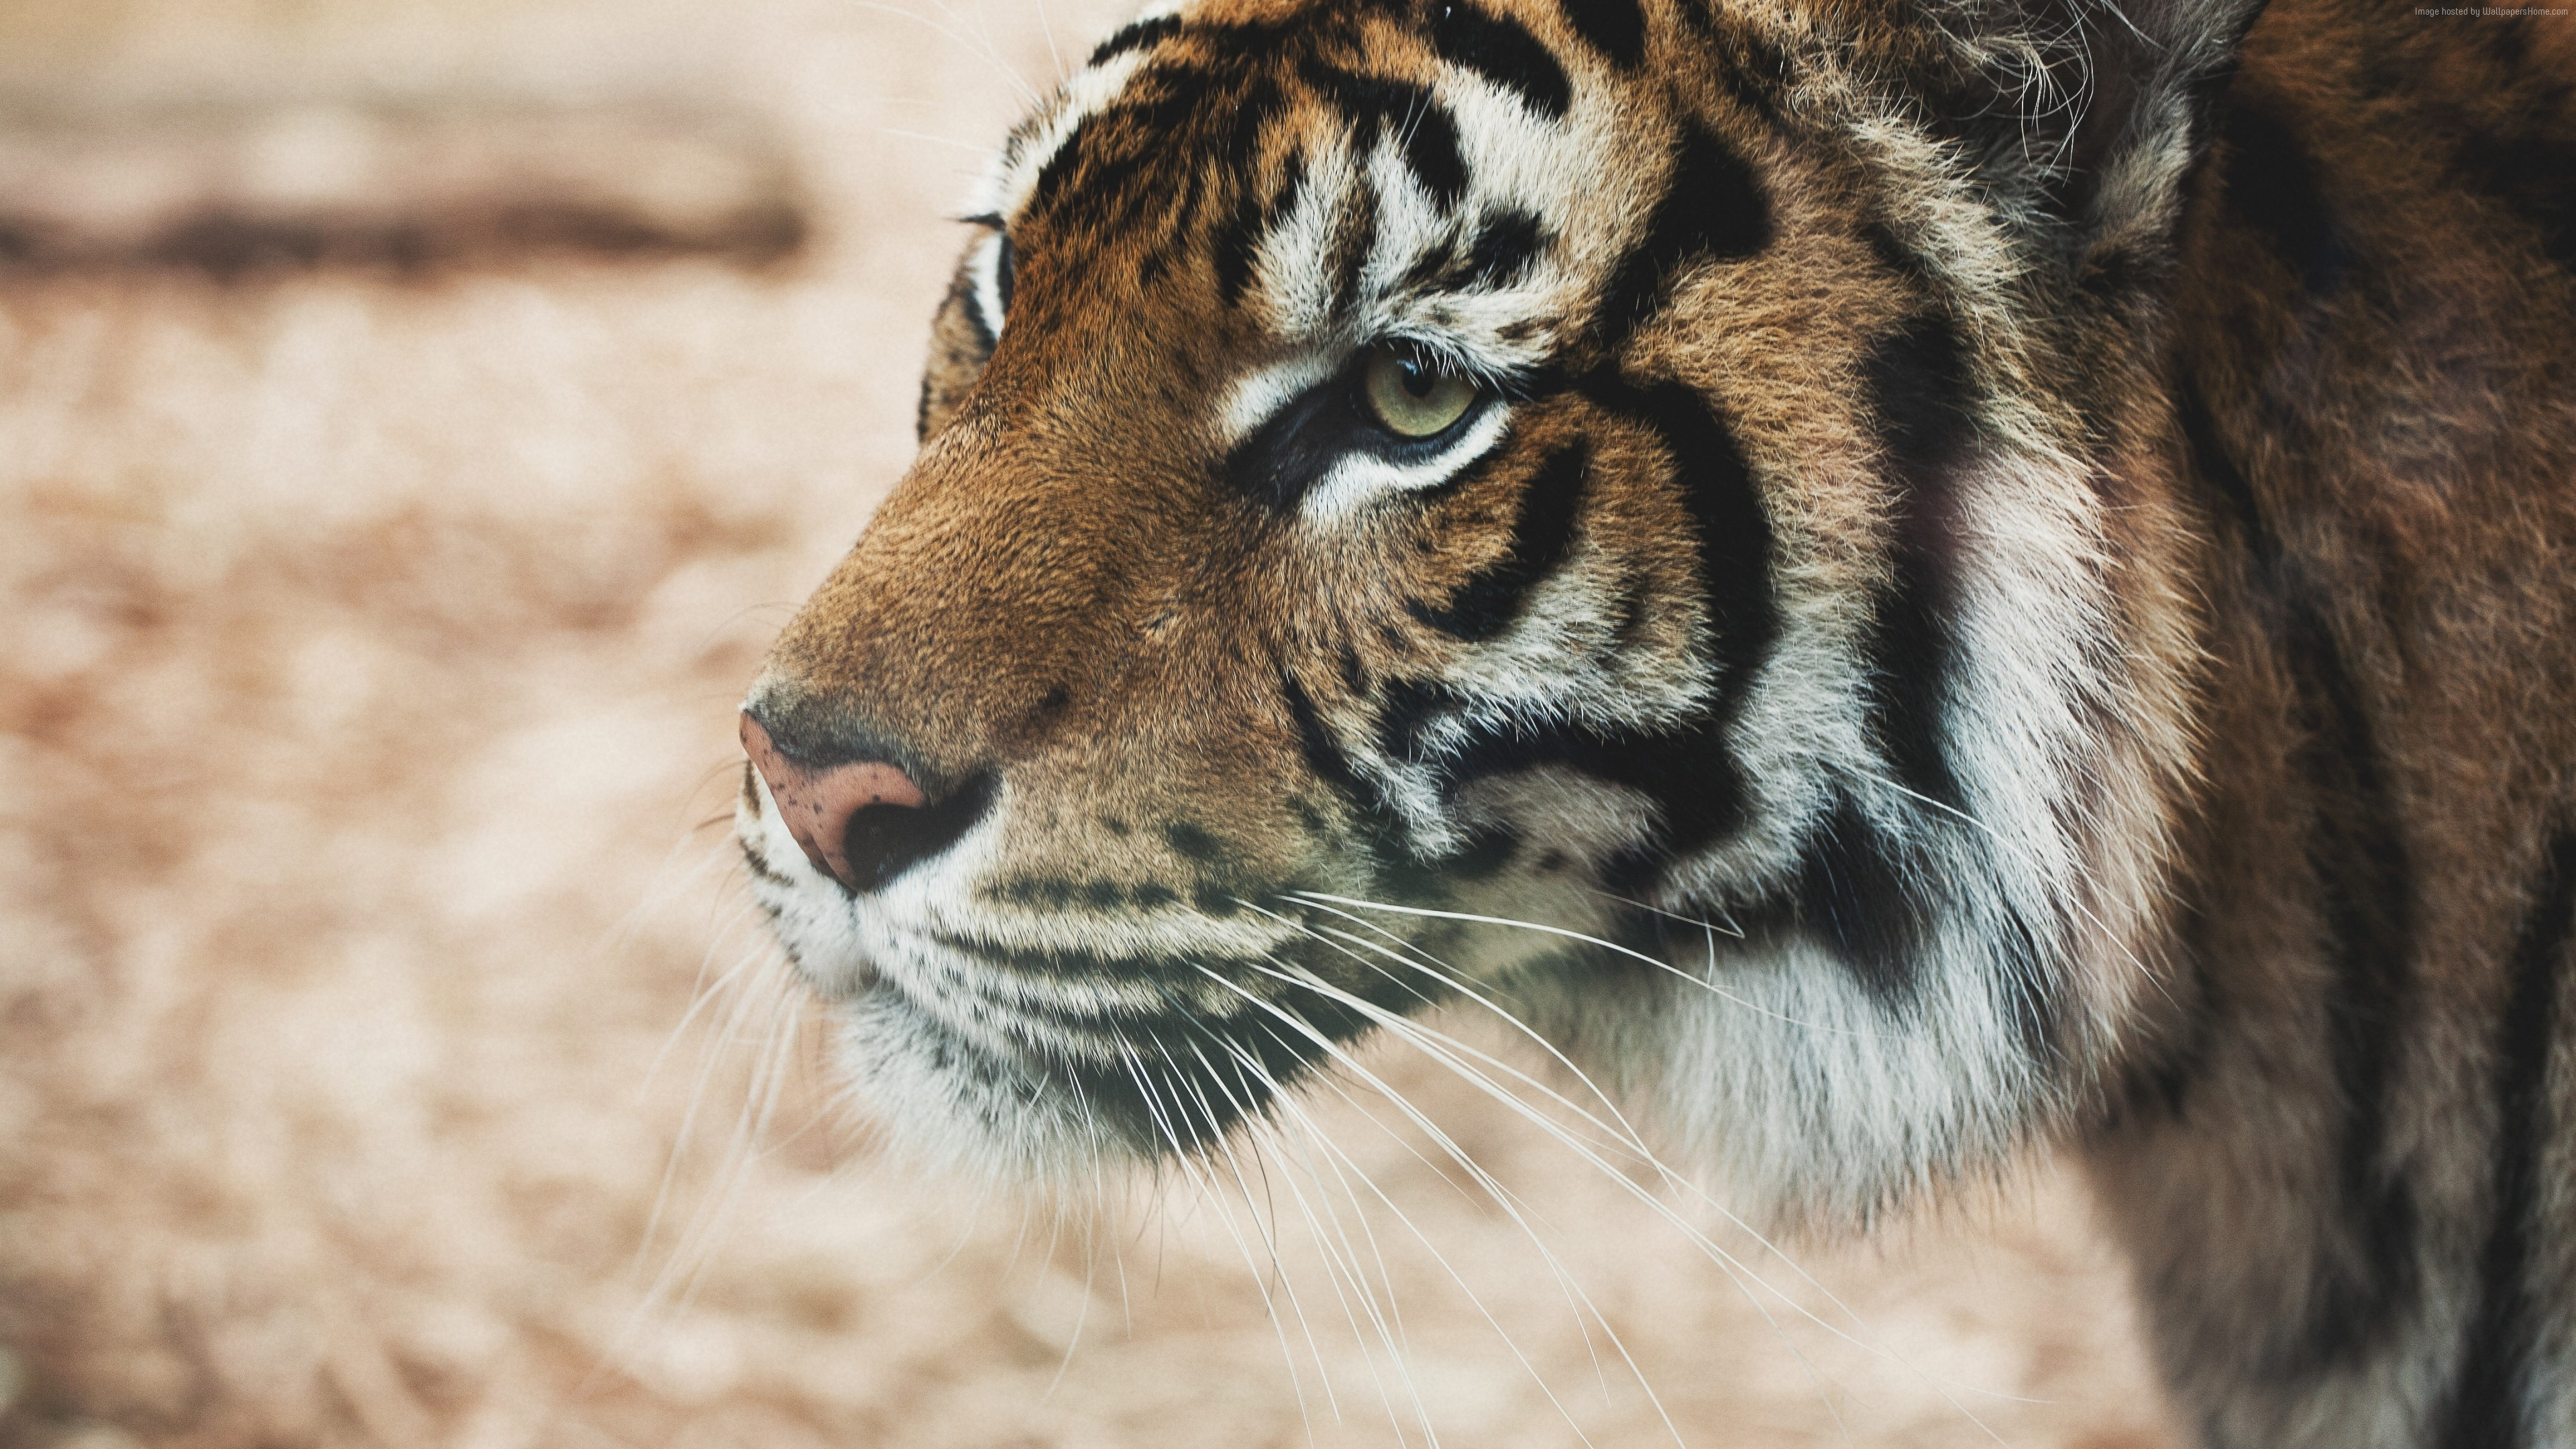 Wallpaper Tiger, savanna, look, cute animals, Animals